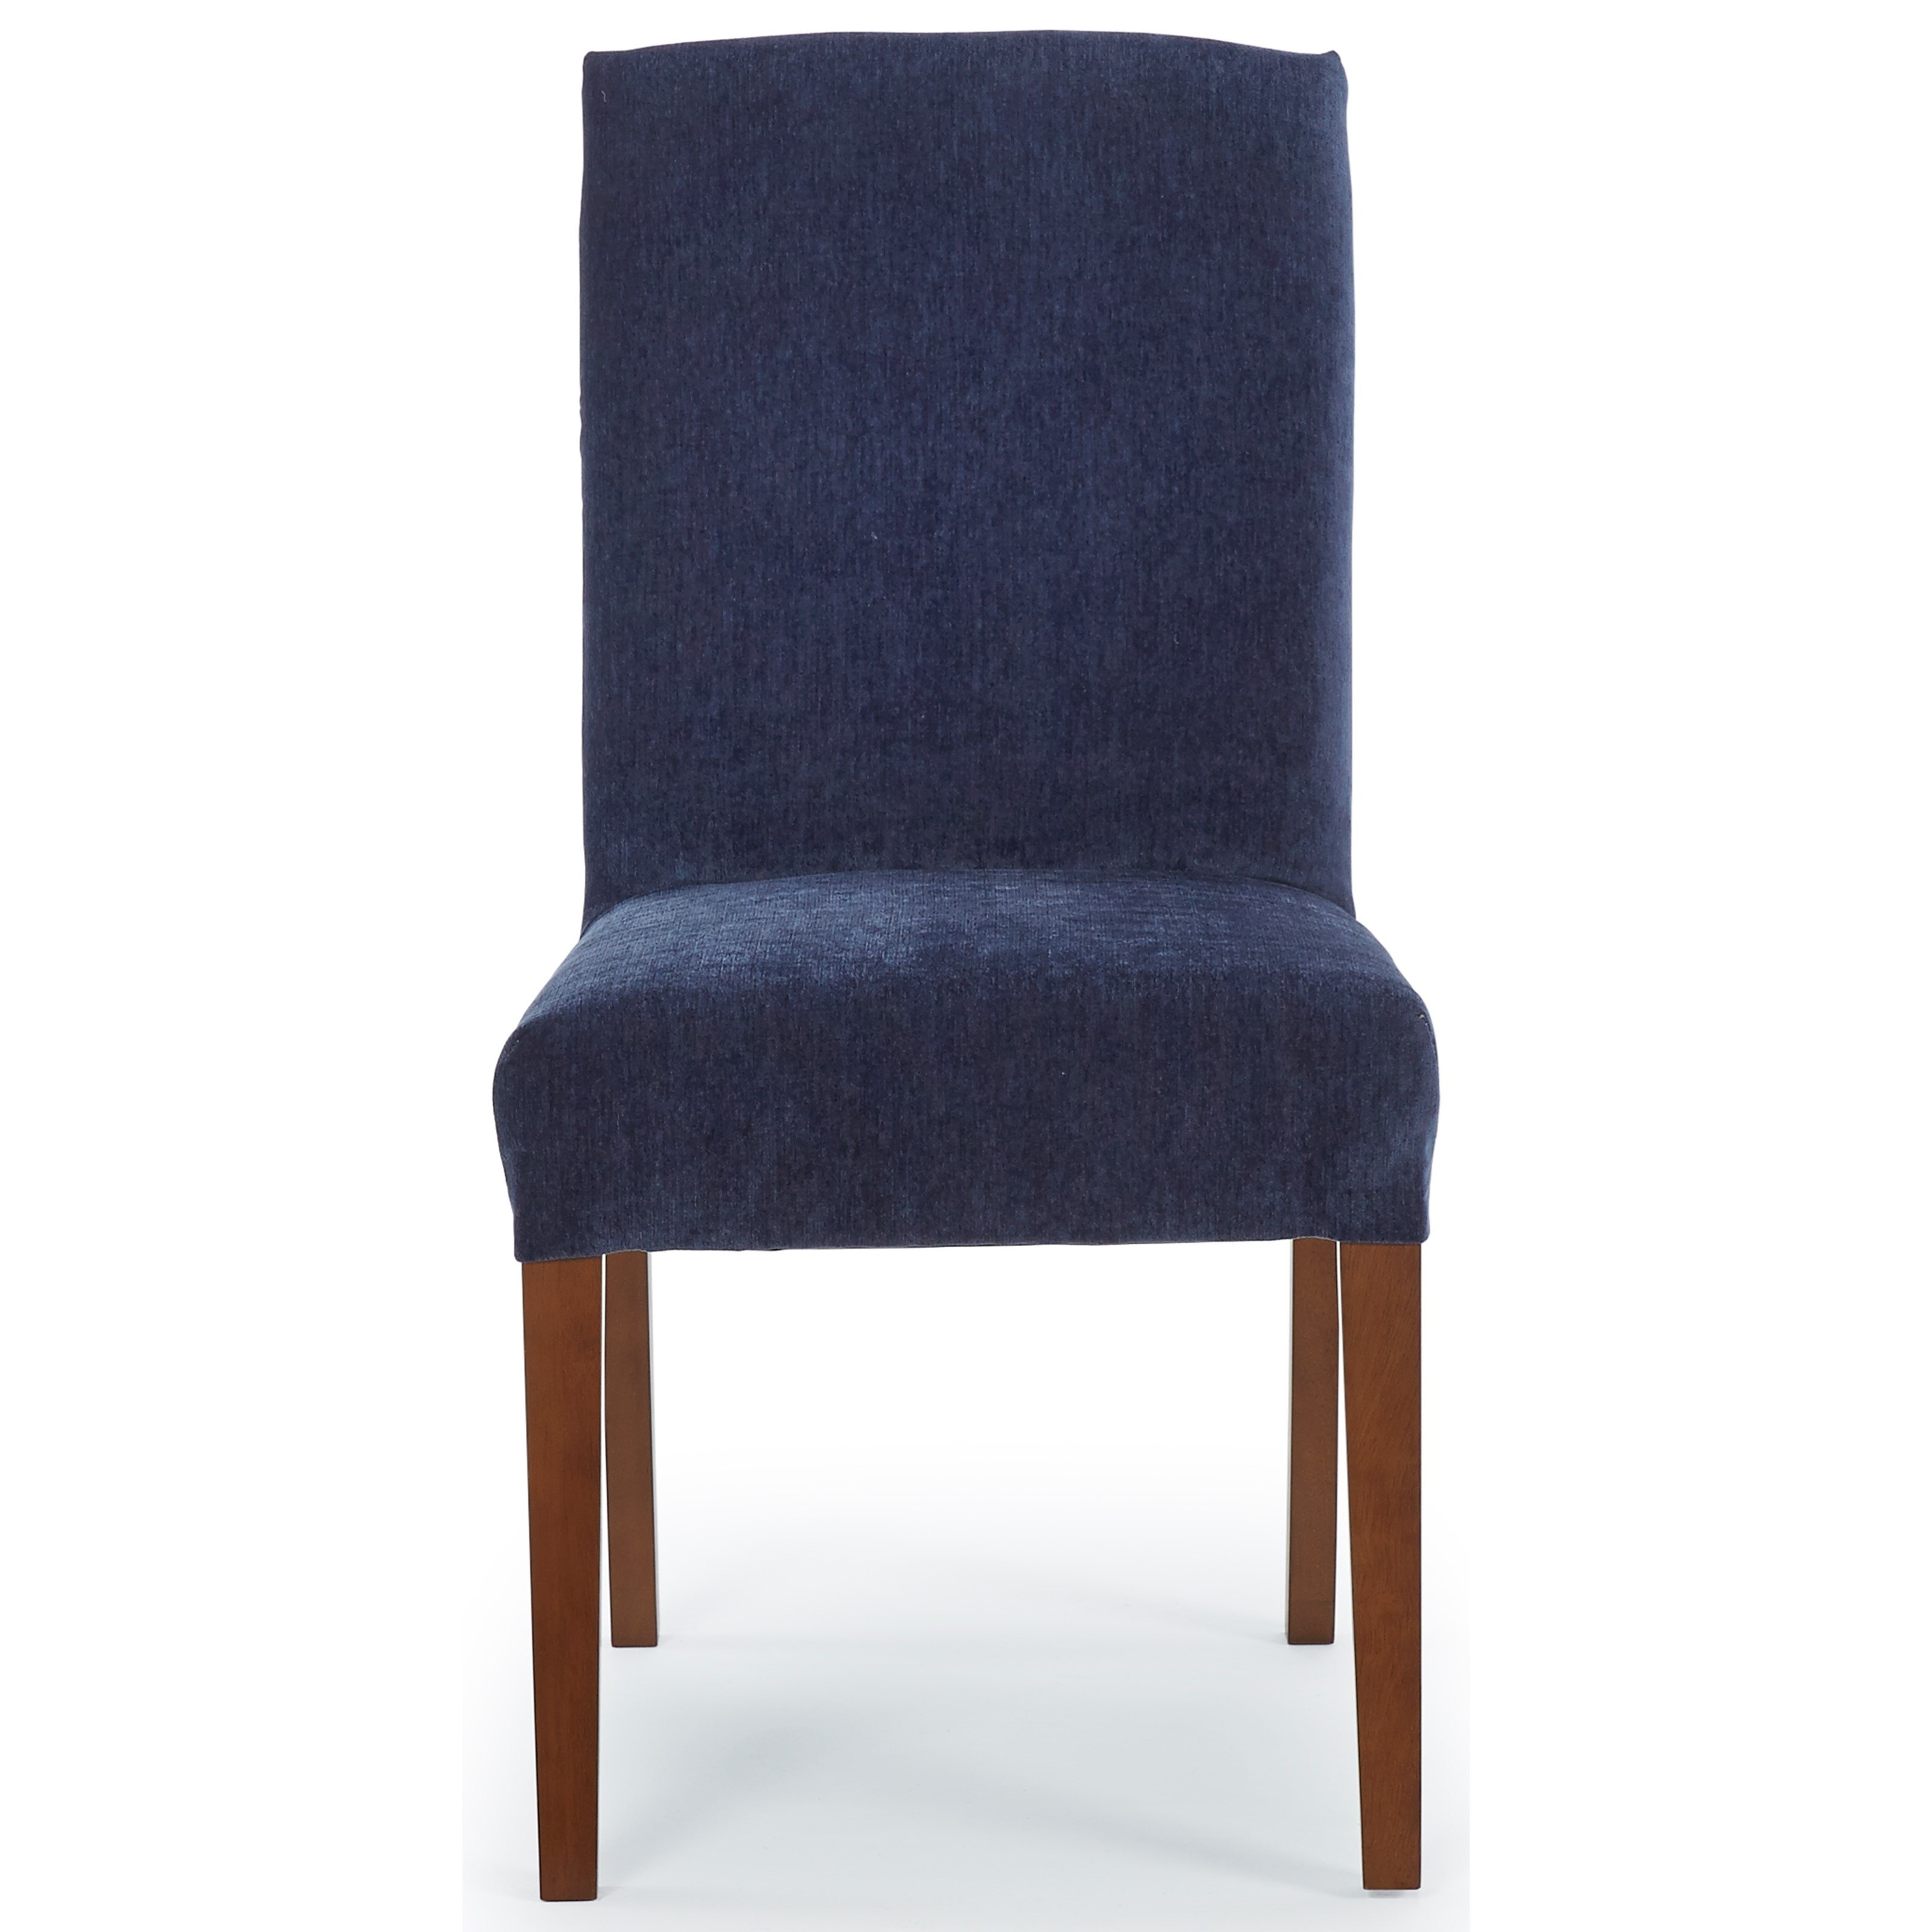 Chairs - Dining Myer Chair by Best Home Furnishings at Baer's Furniture